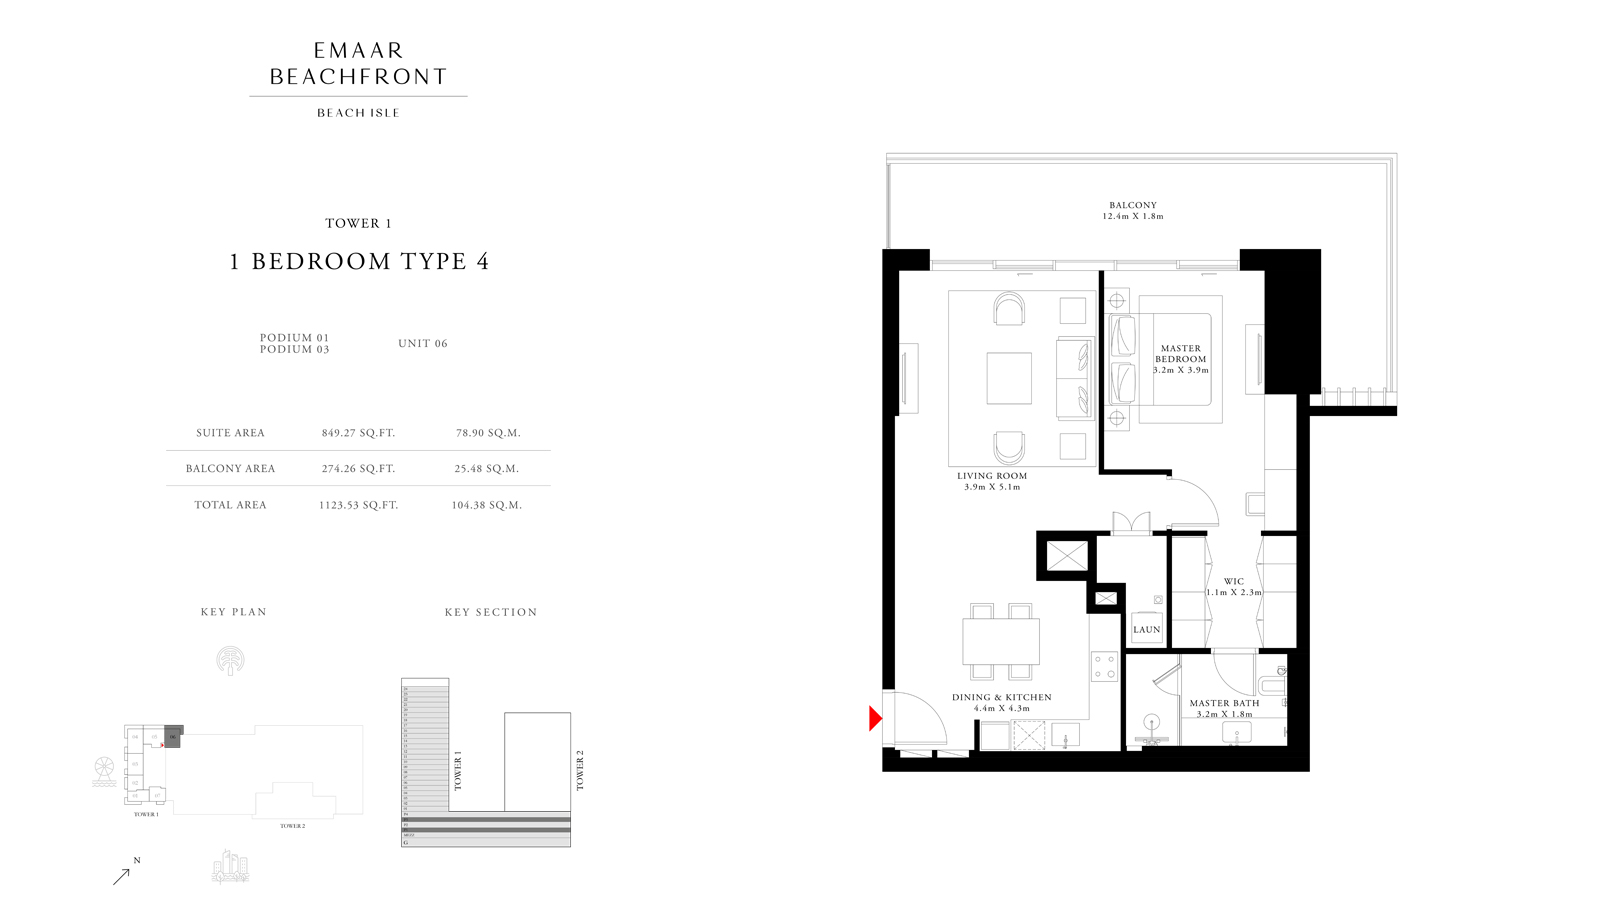 1 Bedroom Type 4 Tower 1, Size 1123    sq. ft.